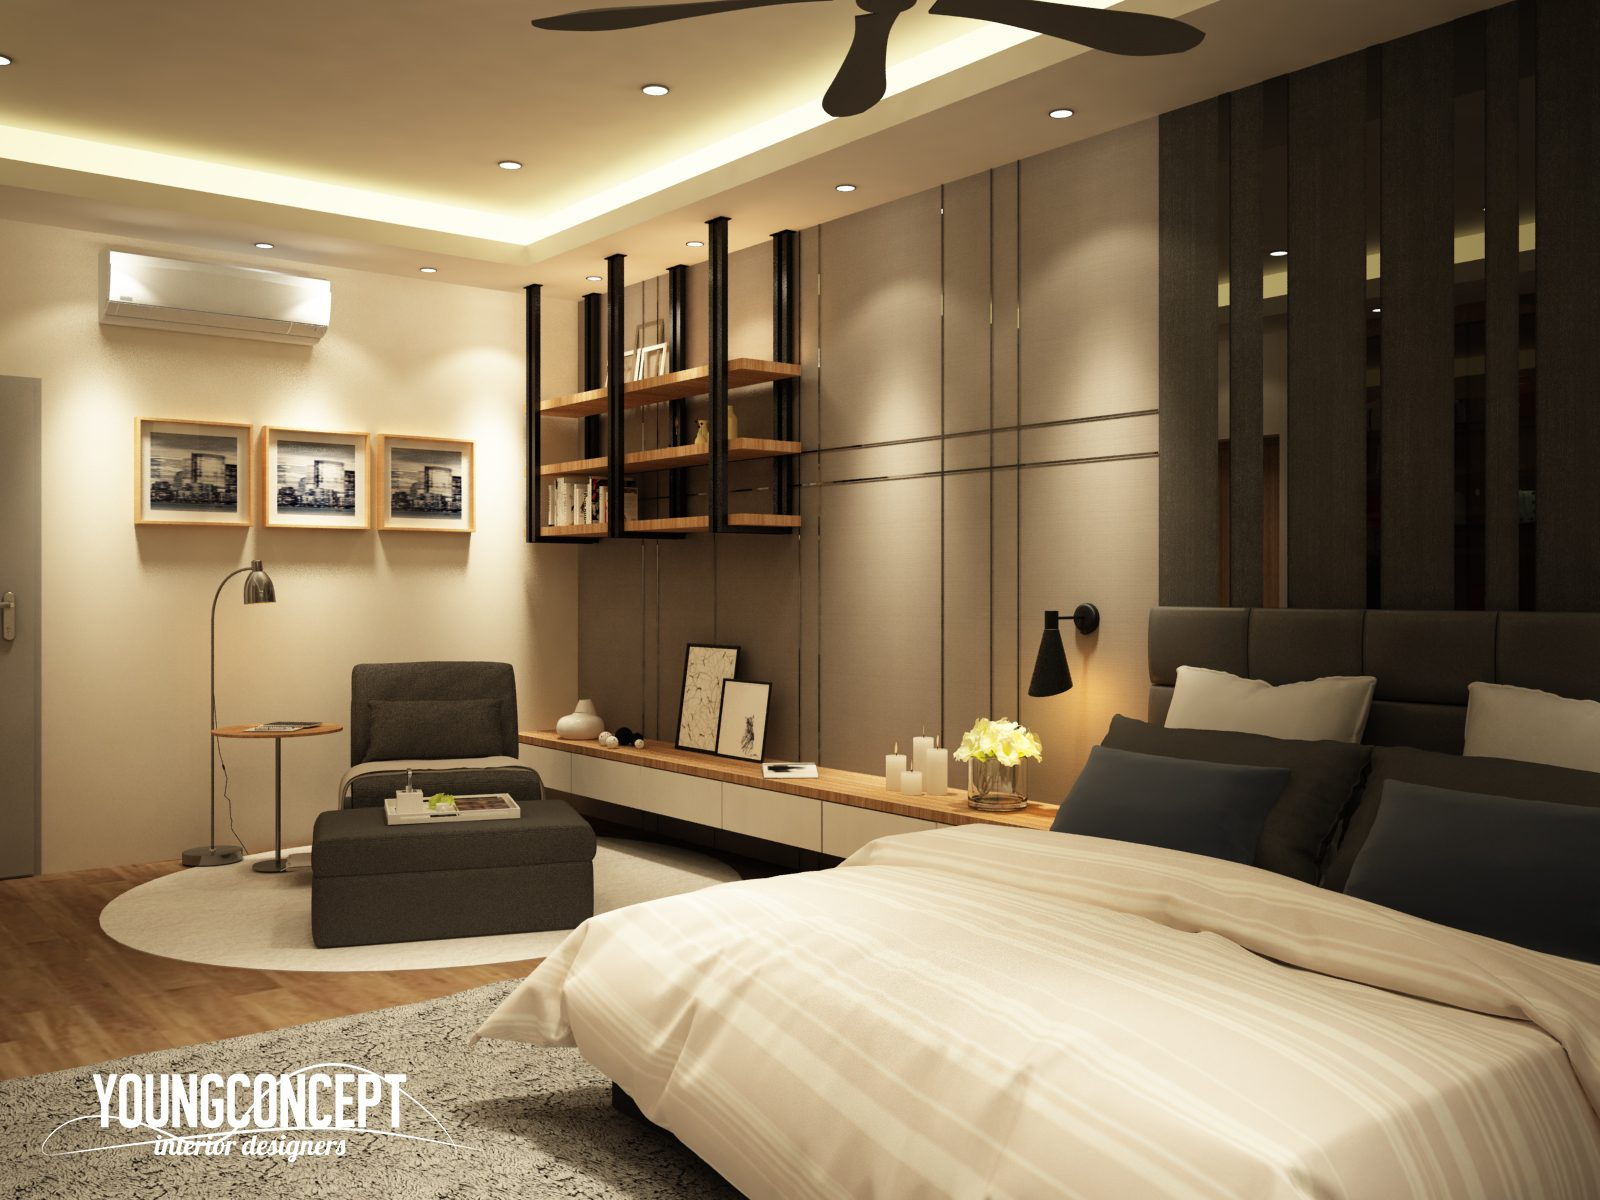 Bedroom with reading area and suspended shelving for this semi-detached house in Taman Segar, Cheras